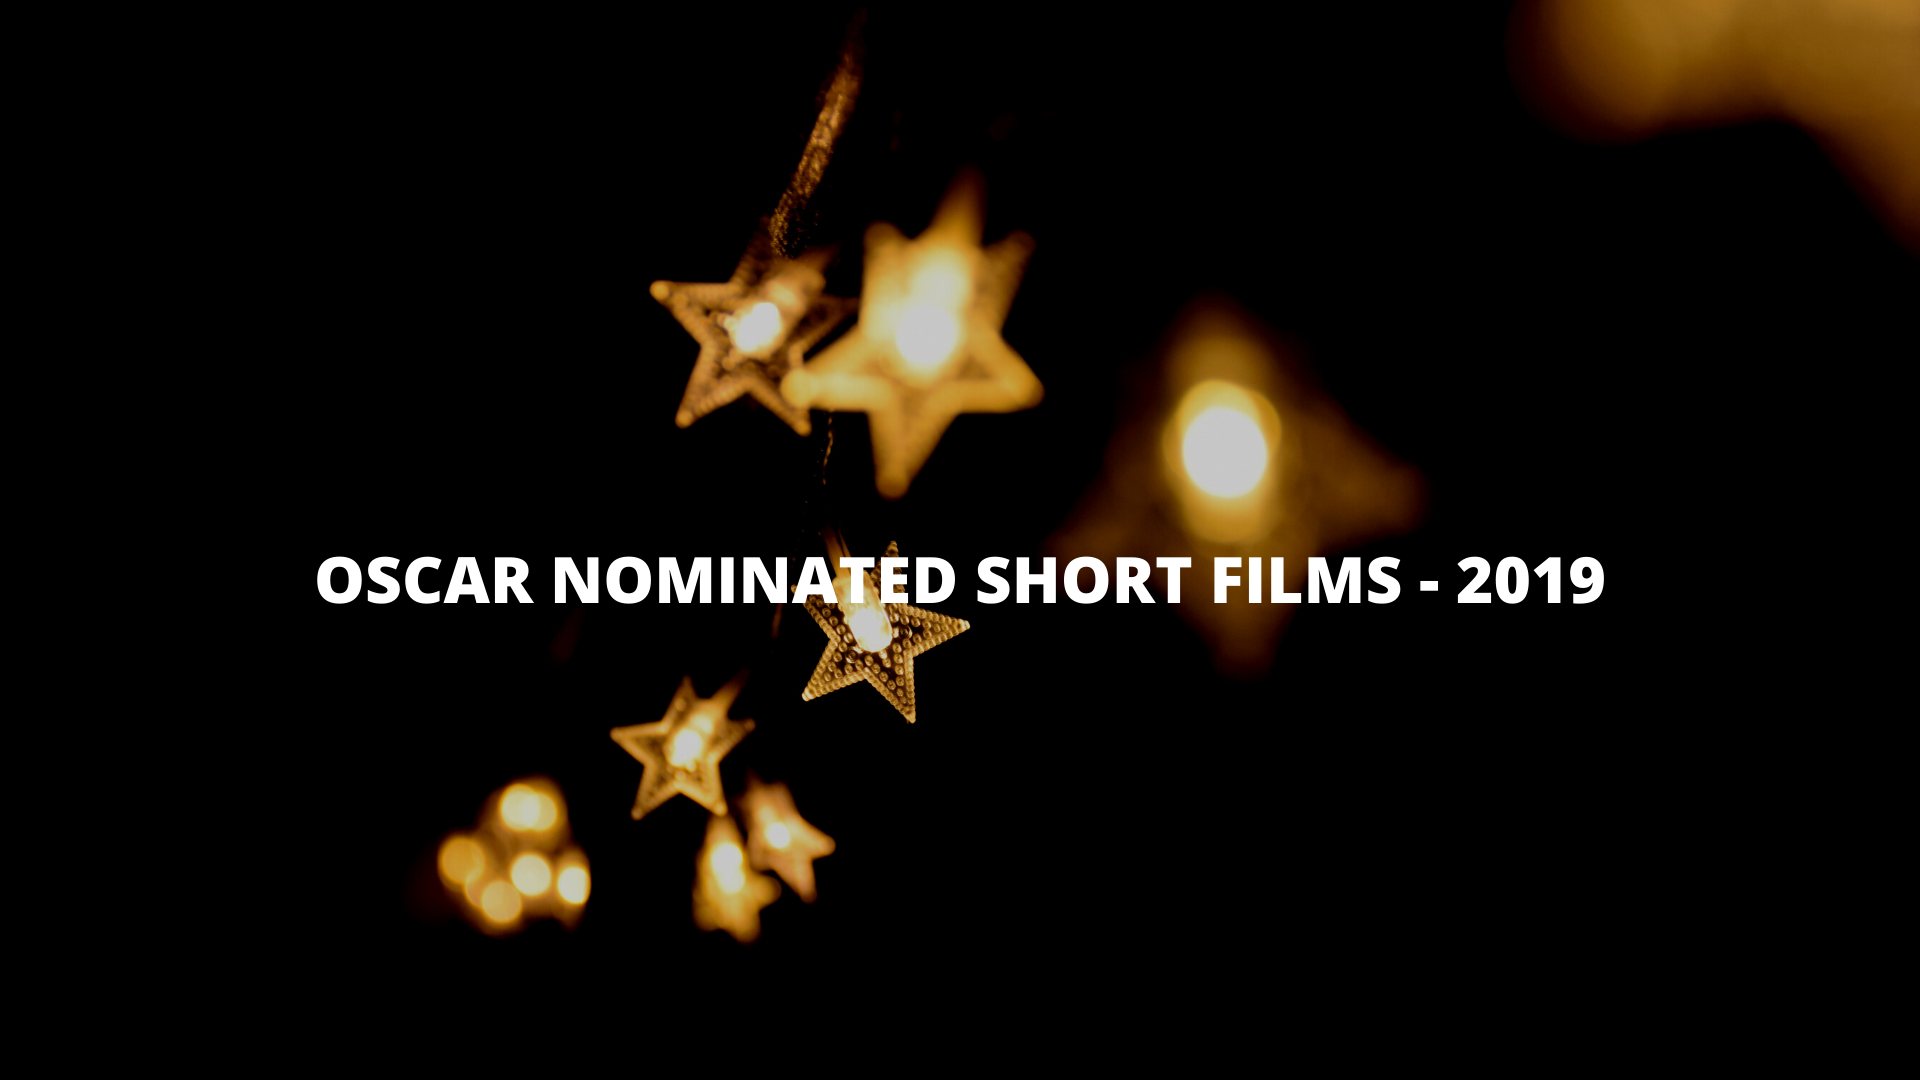 Top 15 Oscar-nominated short films 2019 list